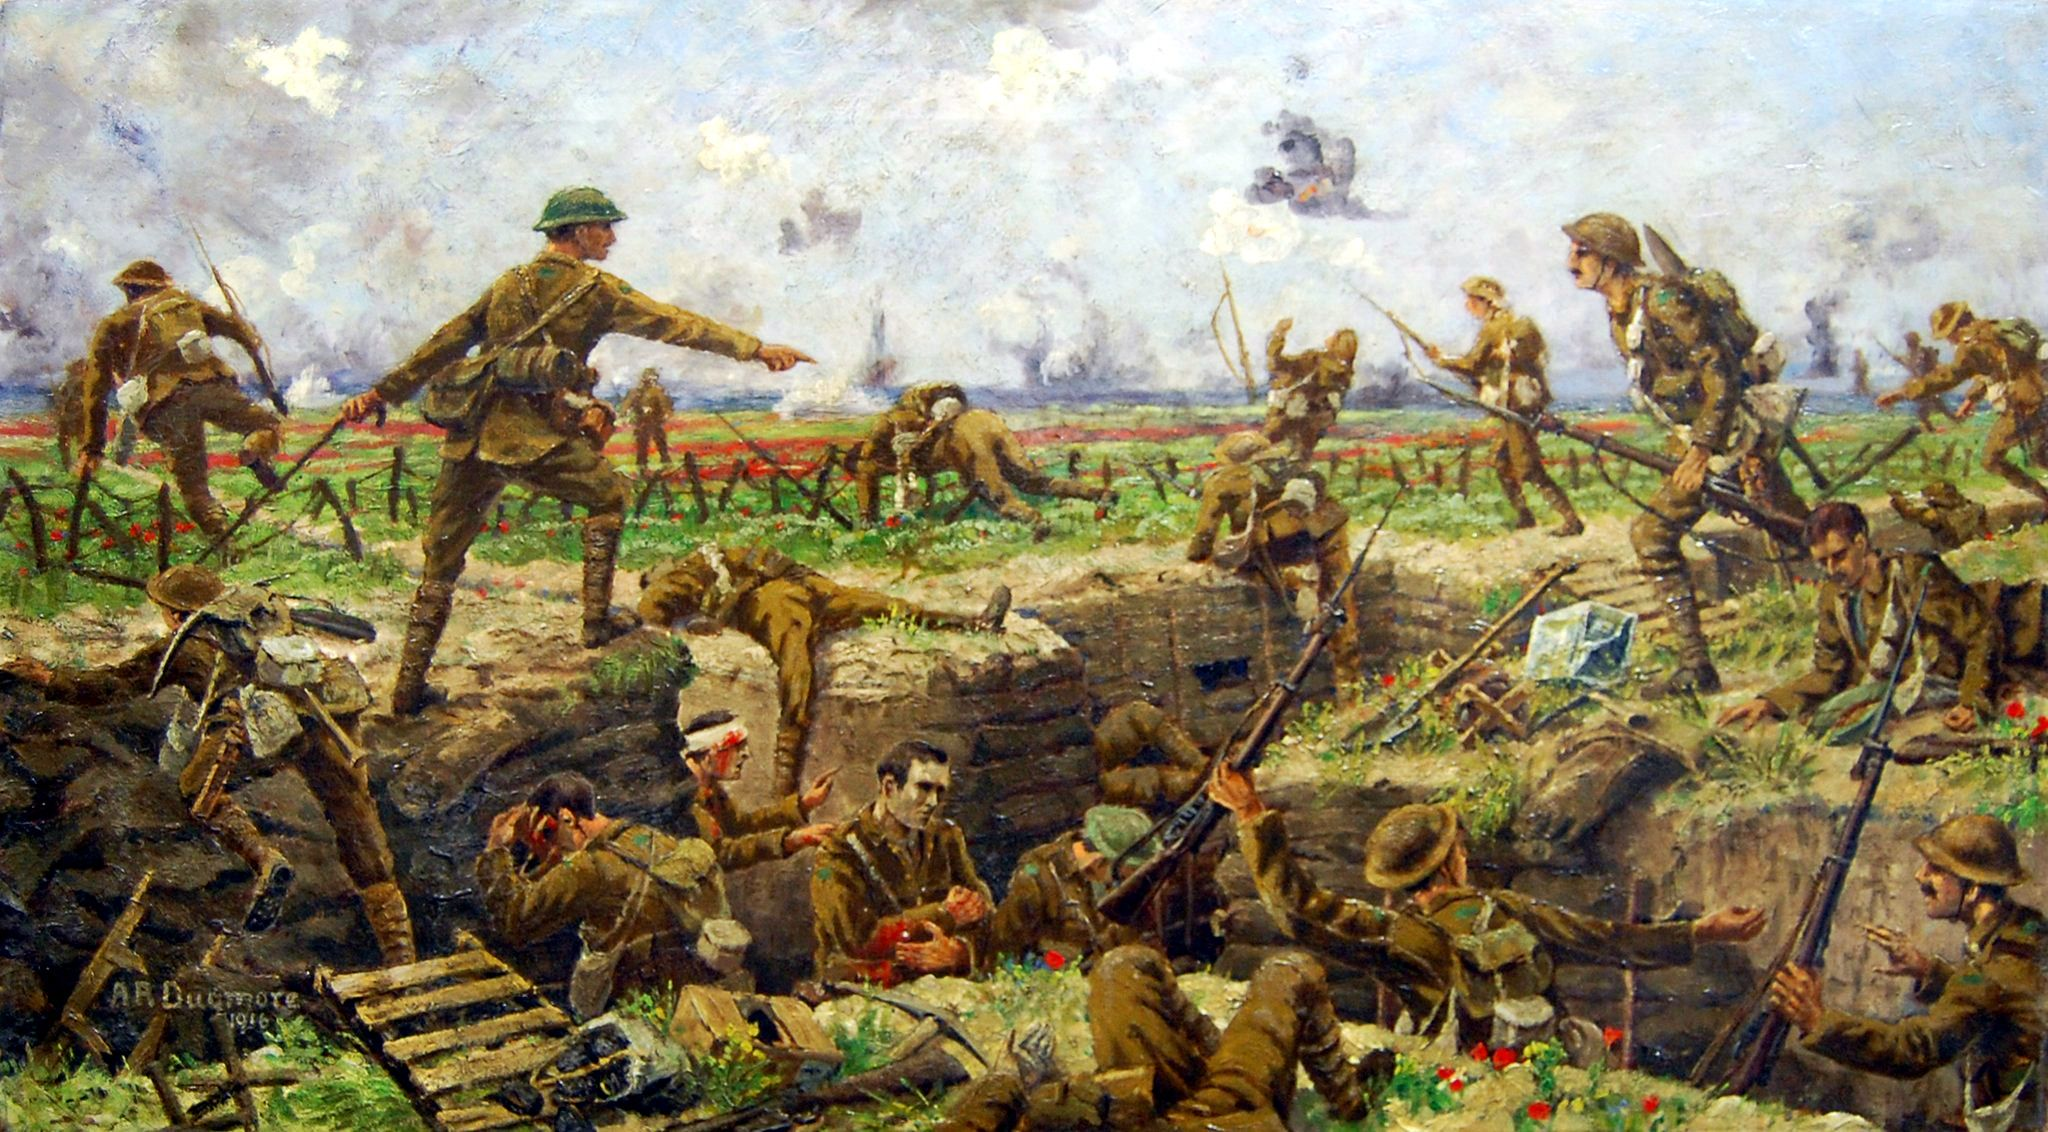 the battle of somme wwi This article was originally published in the conversation read the original article the british offensive on the somme began on july 1, 1916 after 20 weeks, they had advanced six miles the .